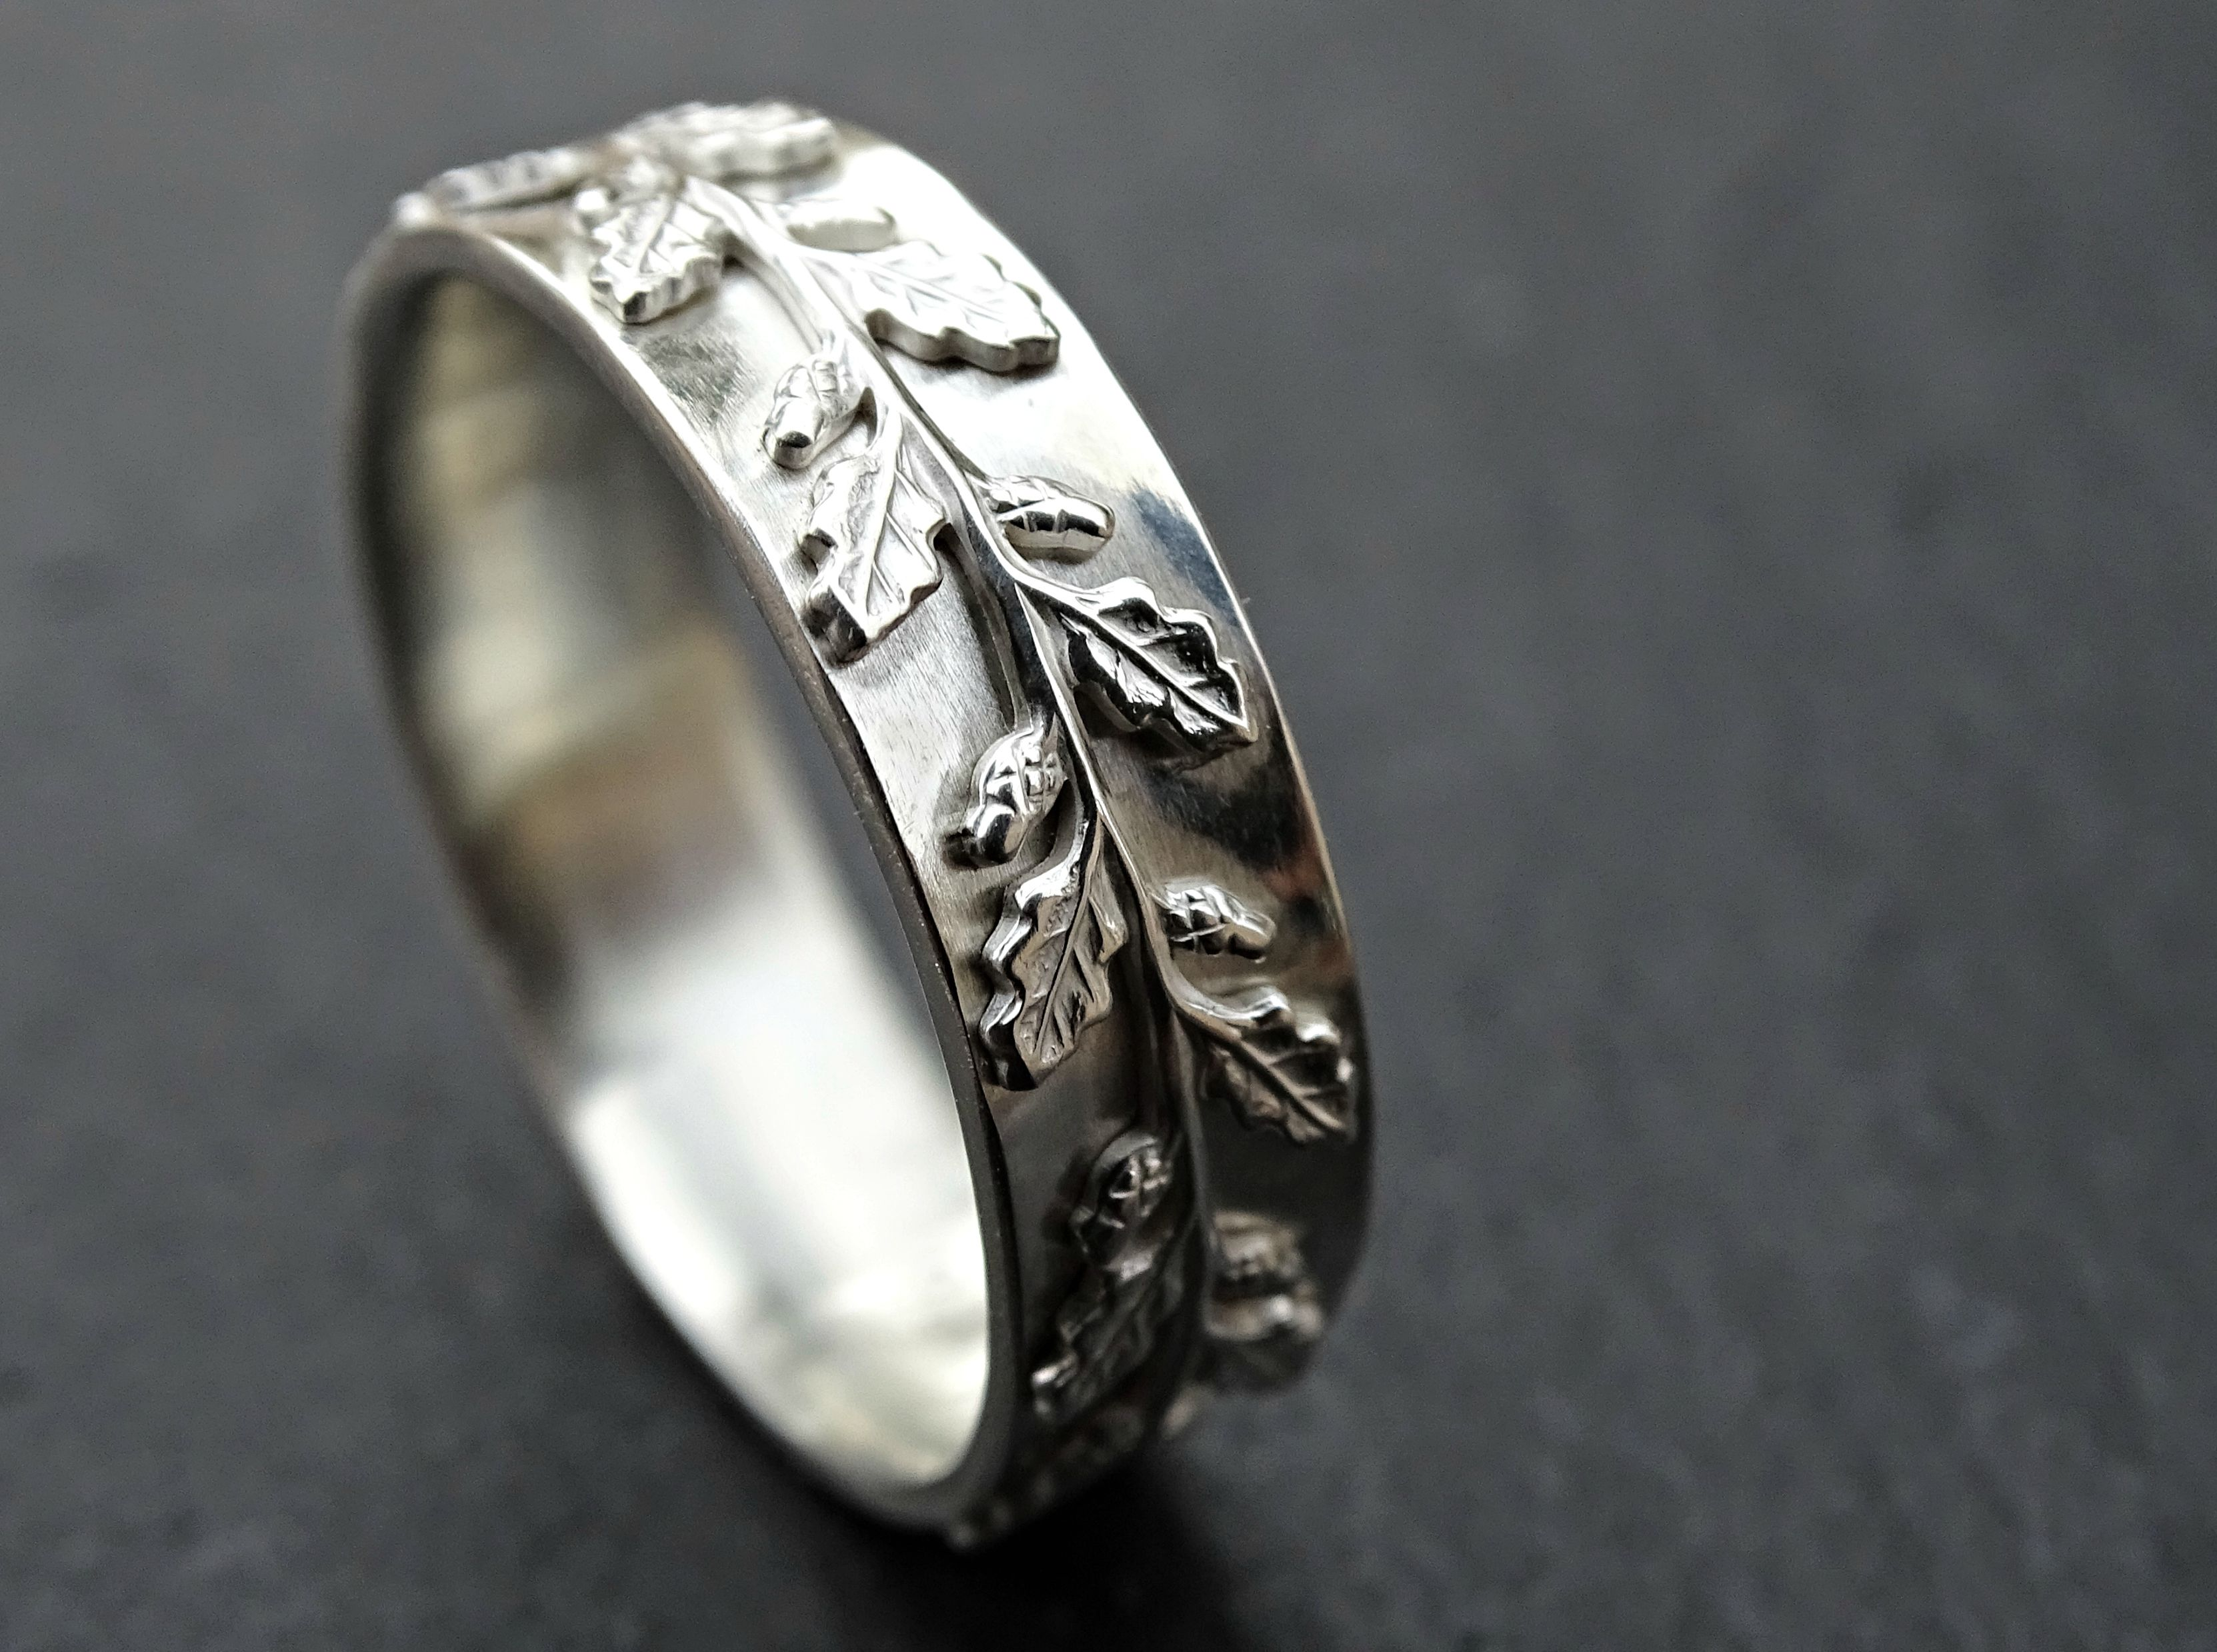 raw wedding medieval oxidized the some and diamond with layered set in ring gold rings pin best shank amazing bezel a silver is it surrounding boulders large an